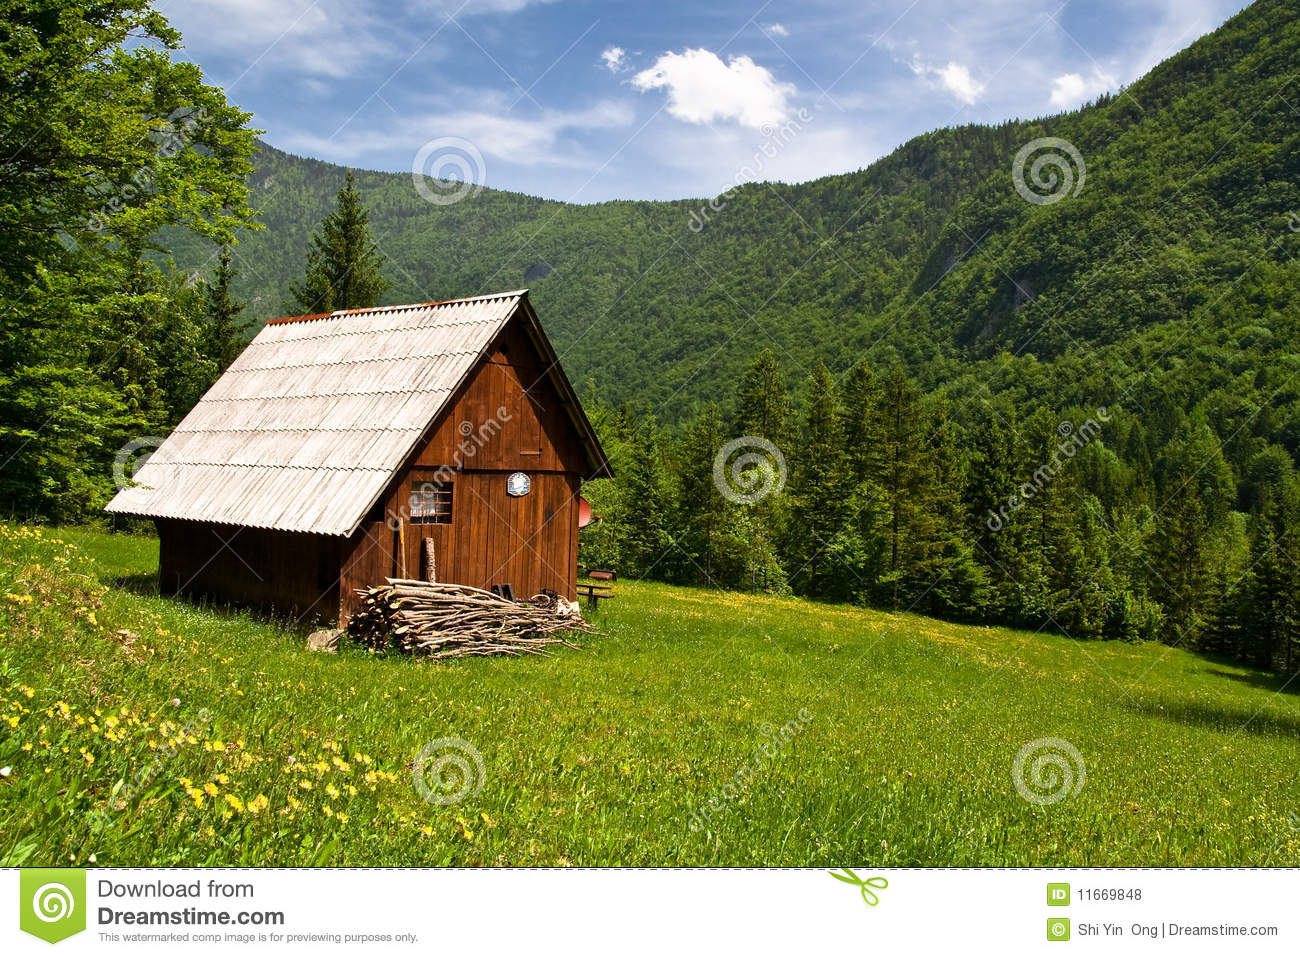 Summer Hut Designs : Mountain Hut In Summer Royalty Free Stock Photos - Image: 11669848